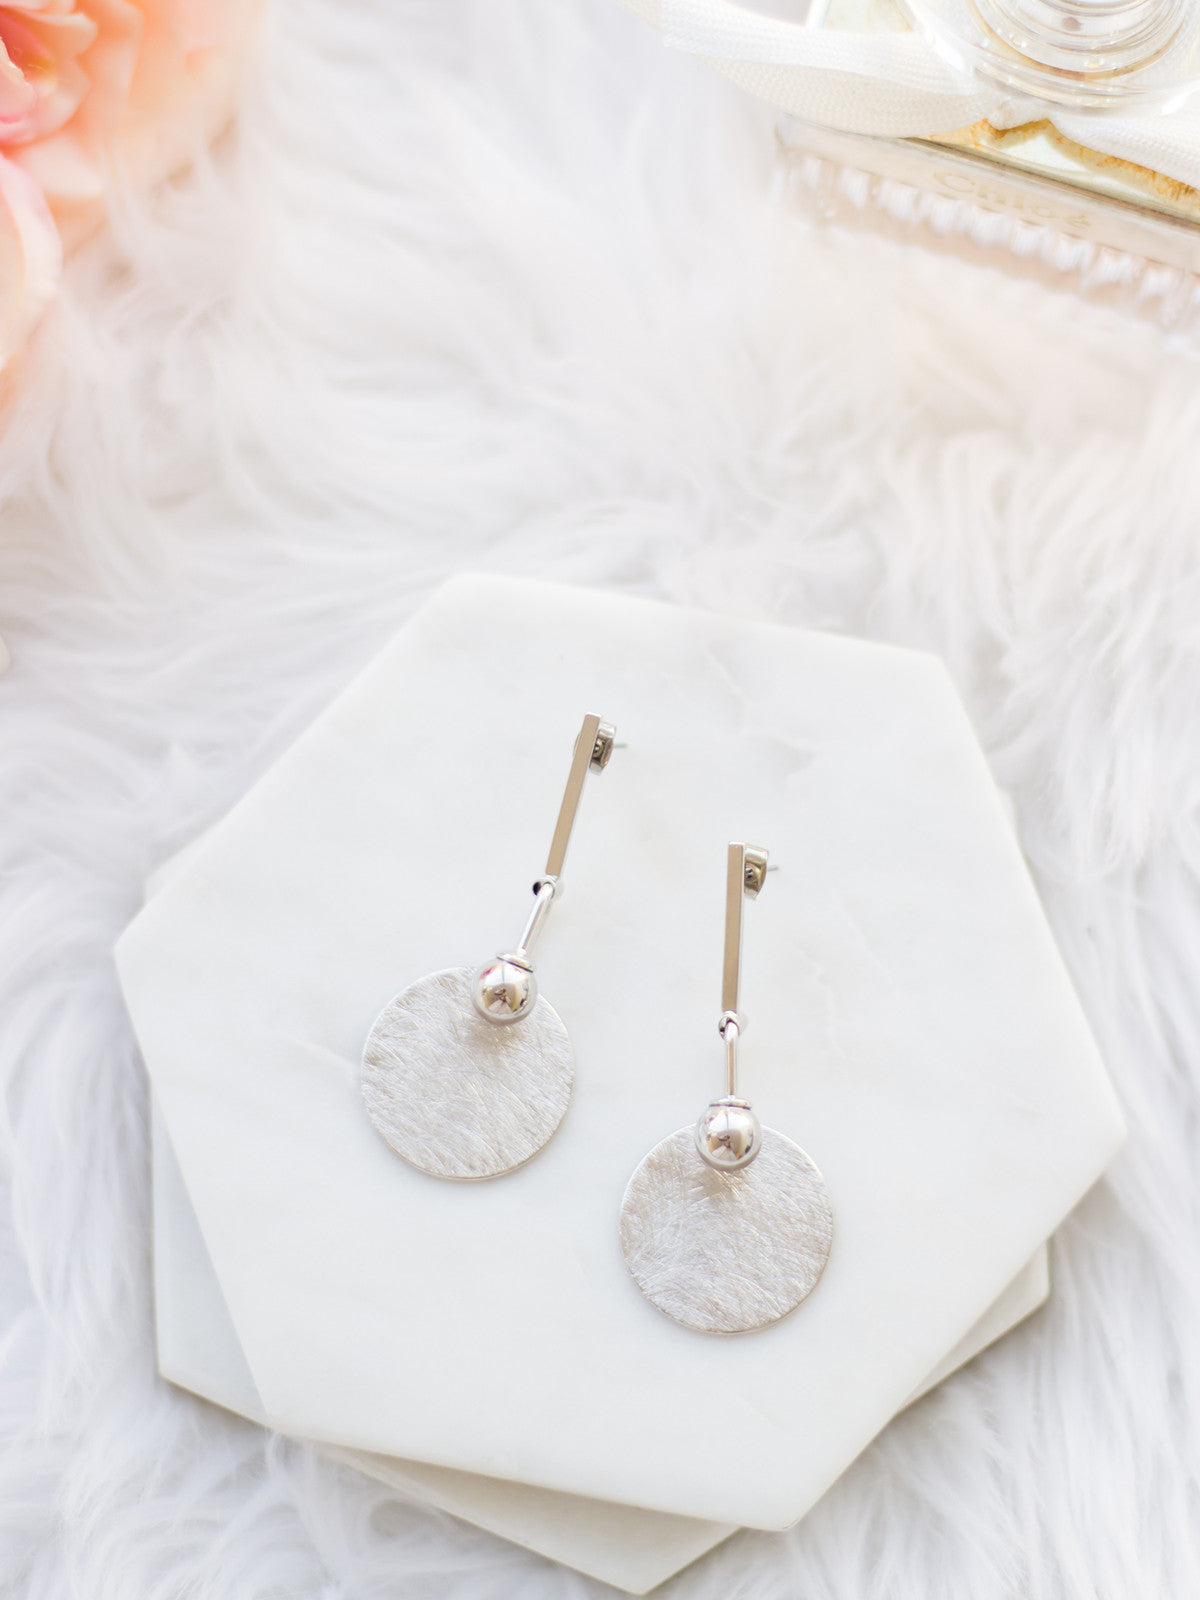 YOU'RE THE ONE LUXE SILVER EARRINGS